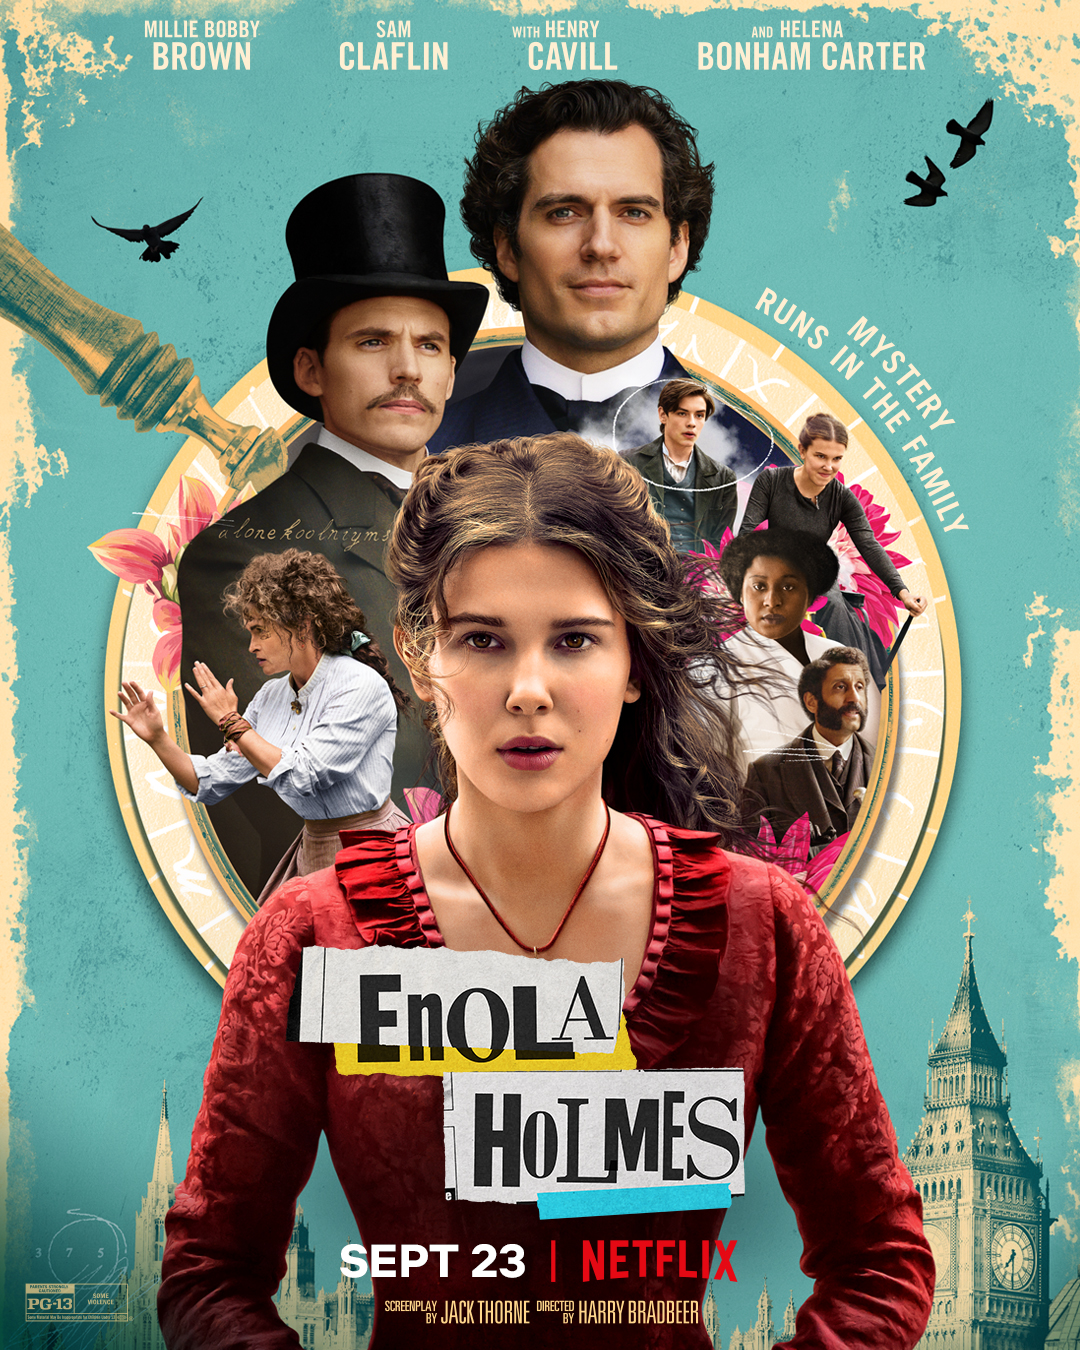 Enola Holmes, With Henry Cavill as Sherlock Holmes, Premieres on Netflix